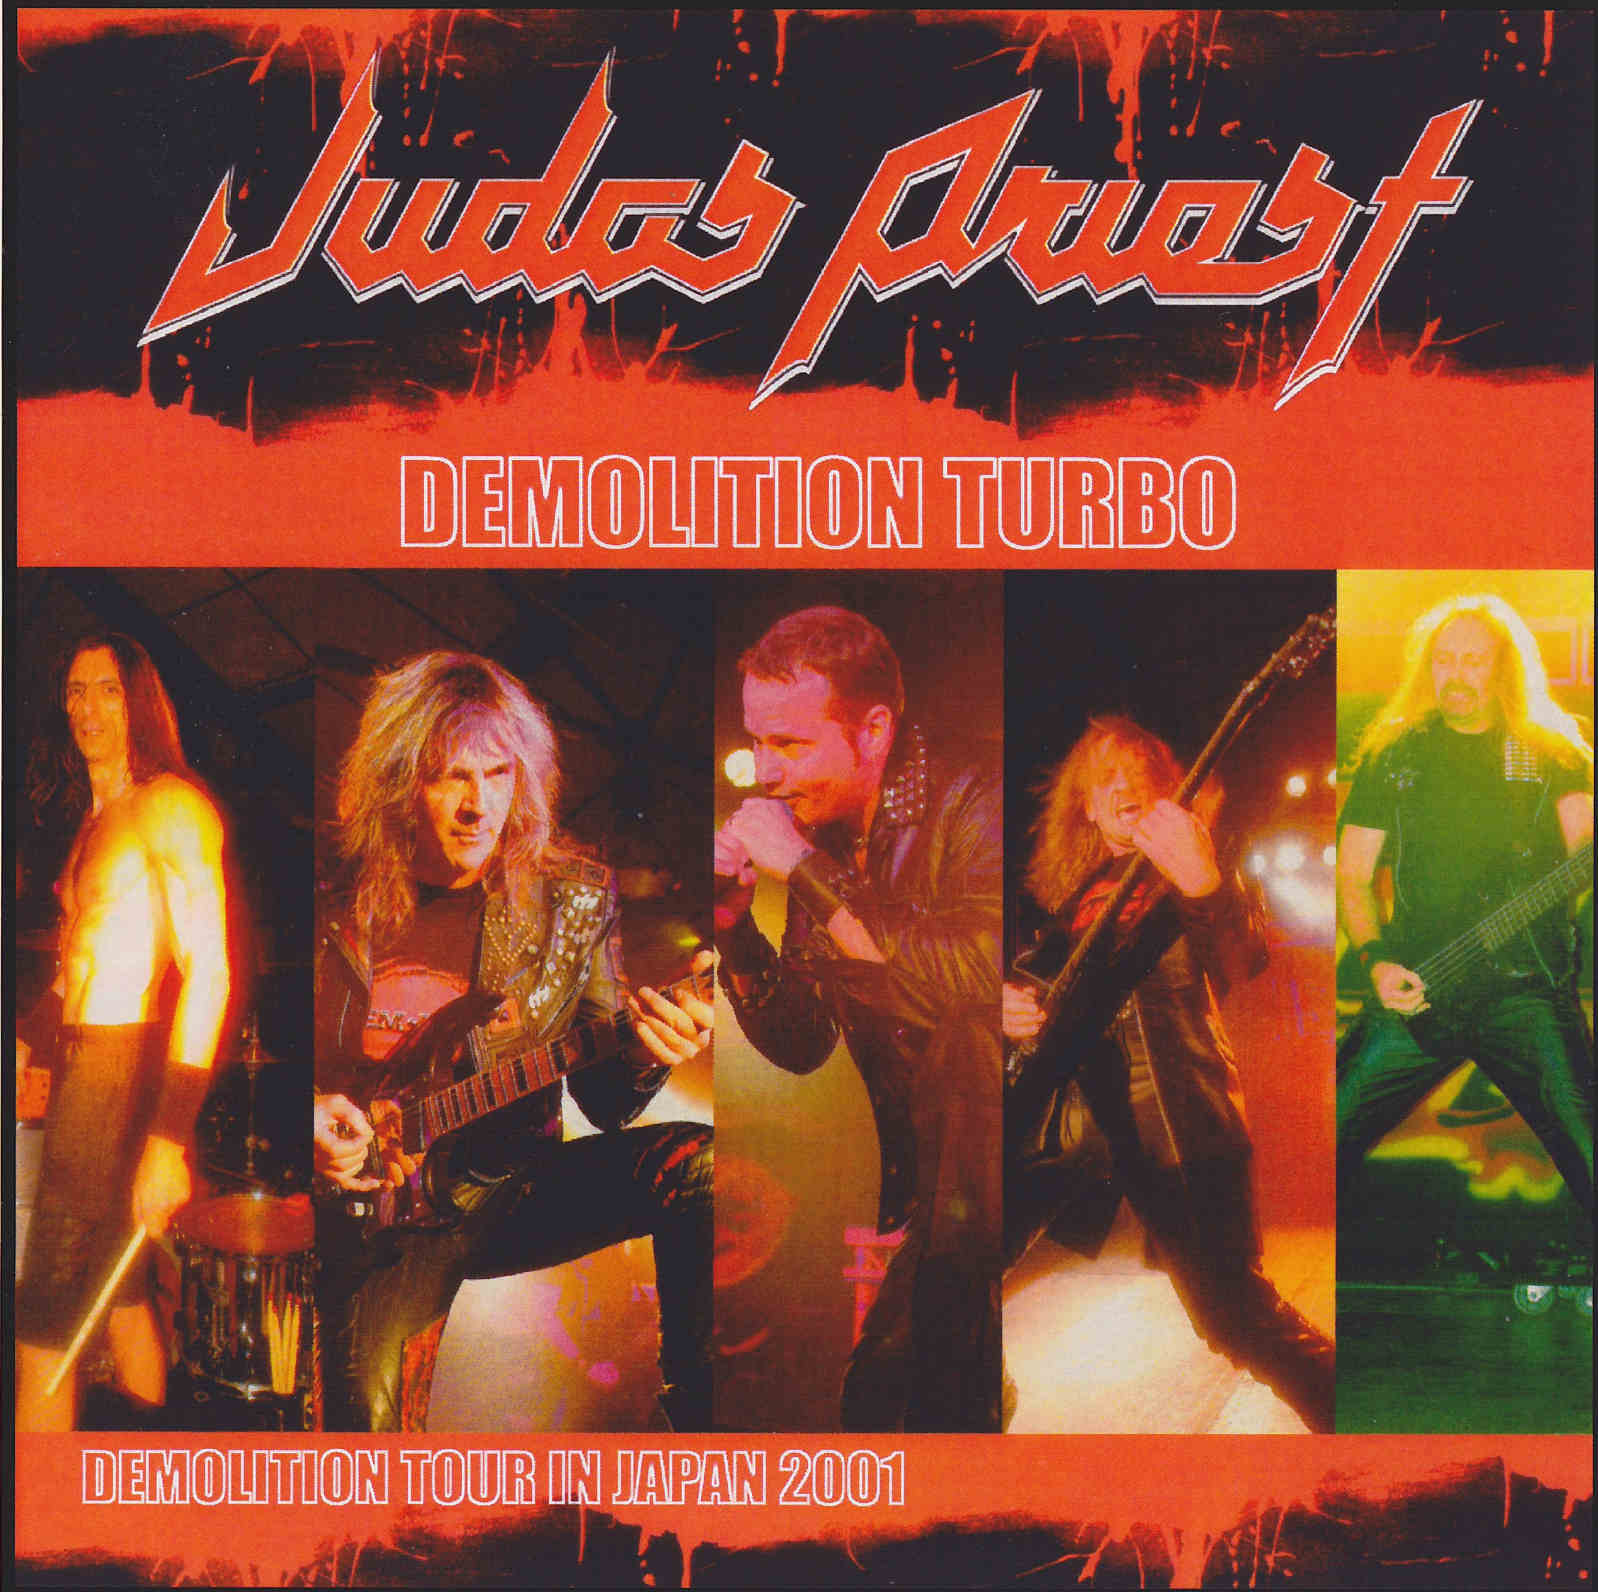 Judas Priest Demolition Turbo Zepp Fukuoka Fukuoka